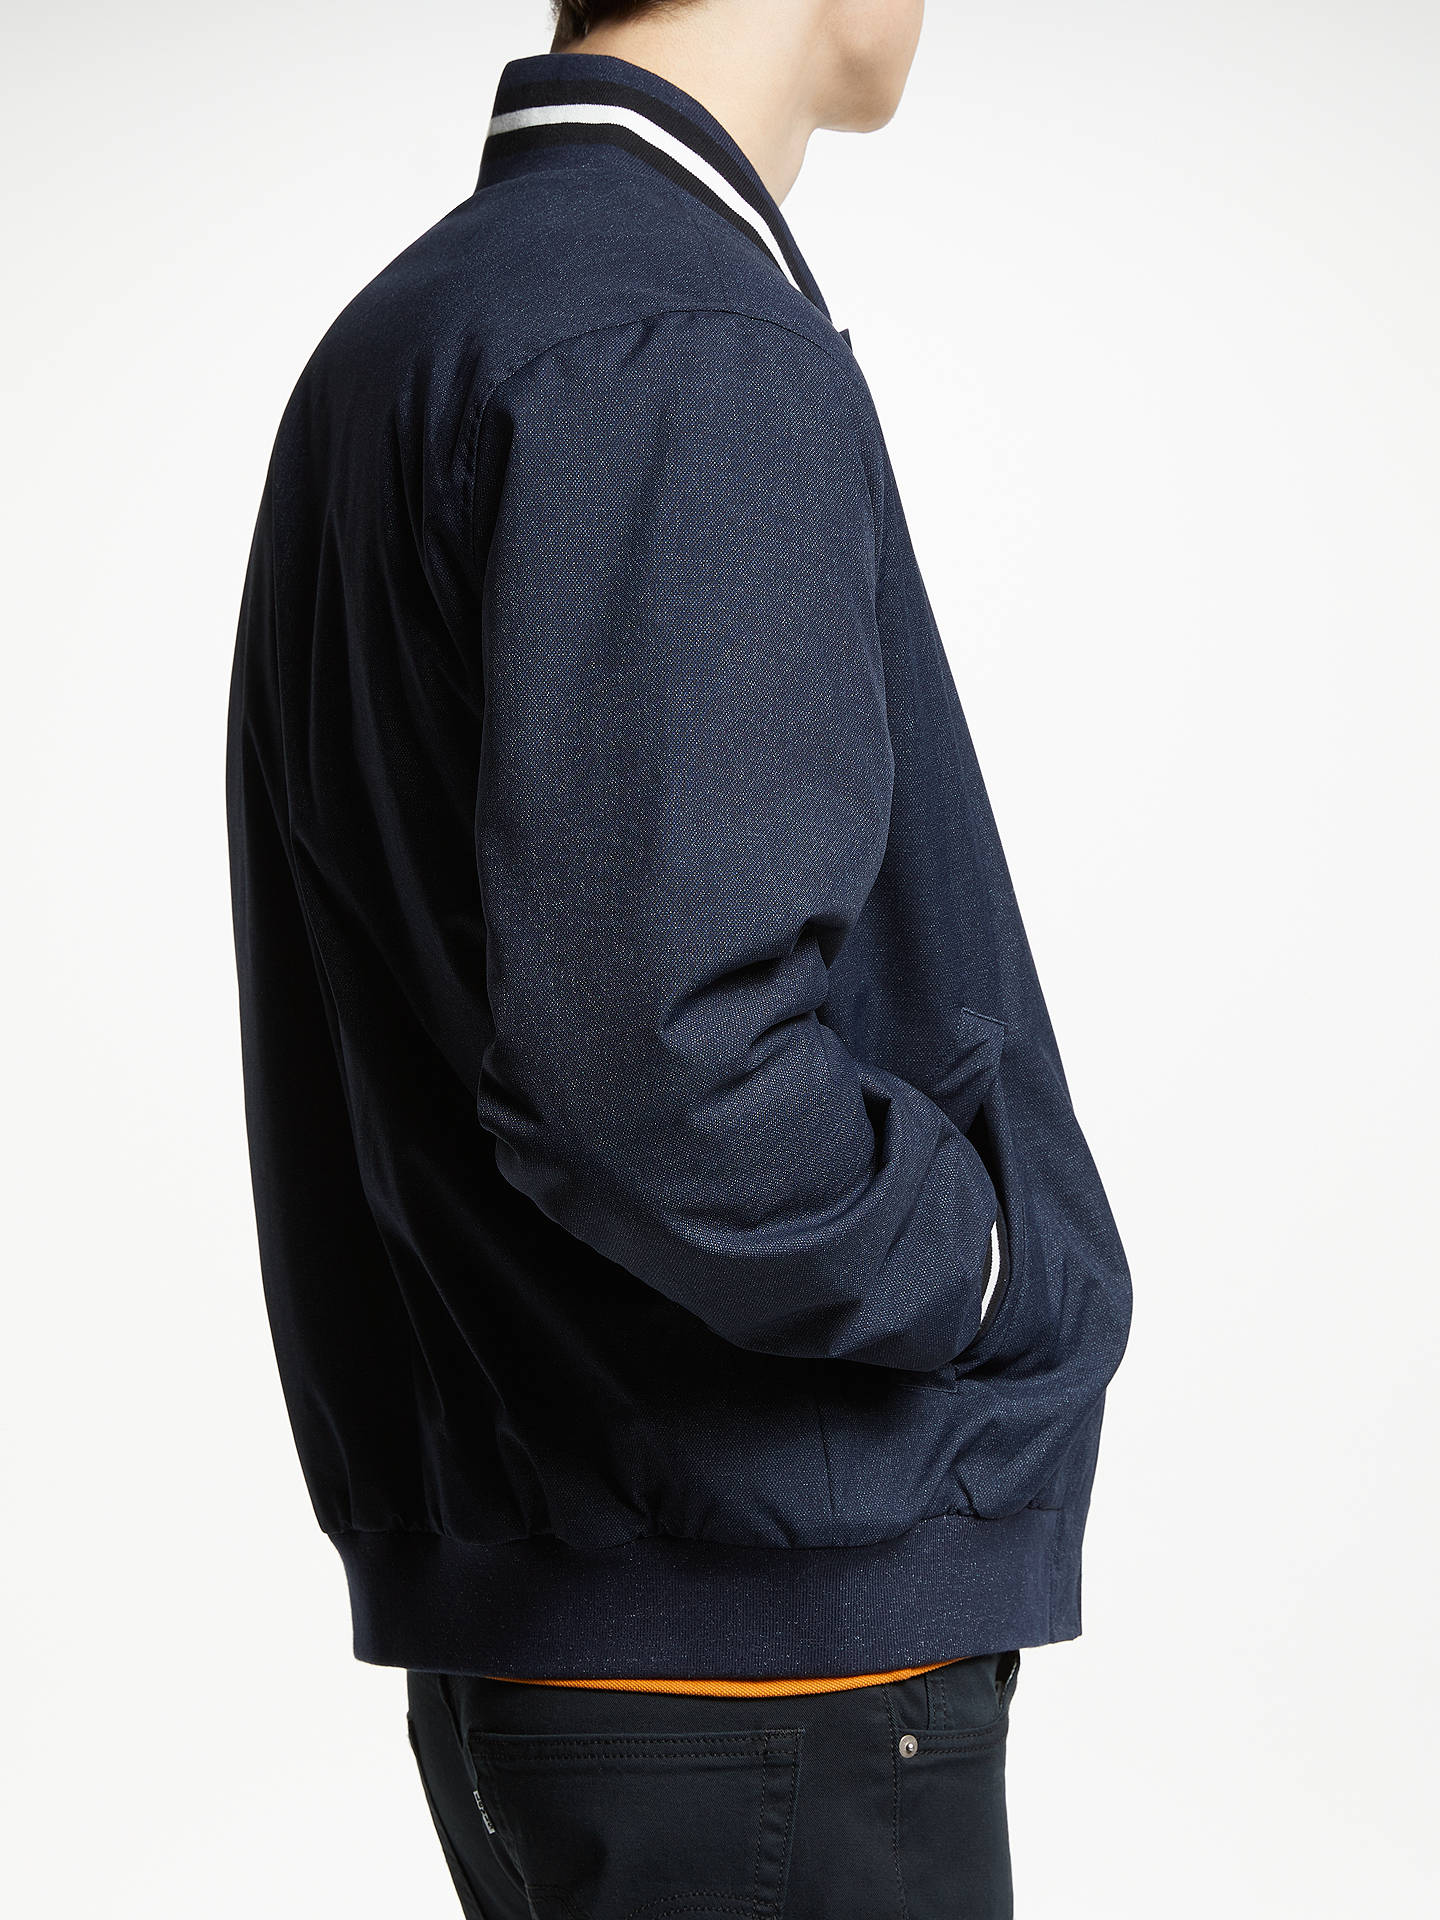 BuyFred Perry Marl Bomber Jacket, Navy, M Online at johnlewis.com